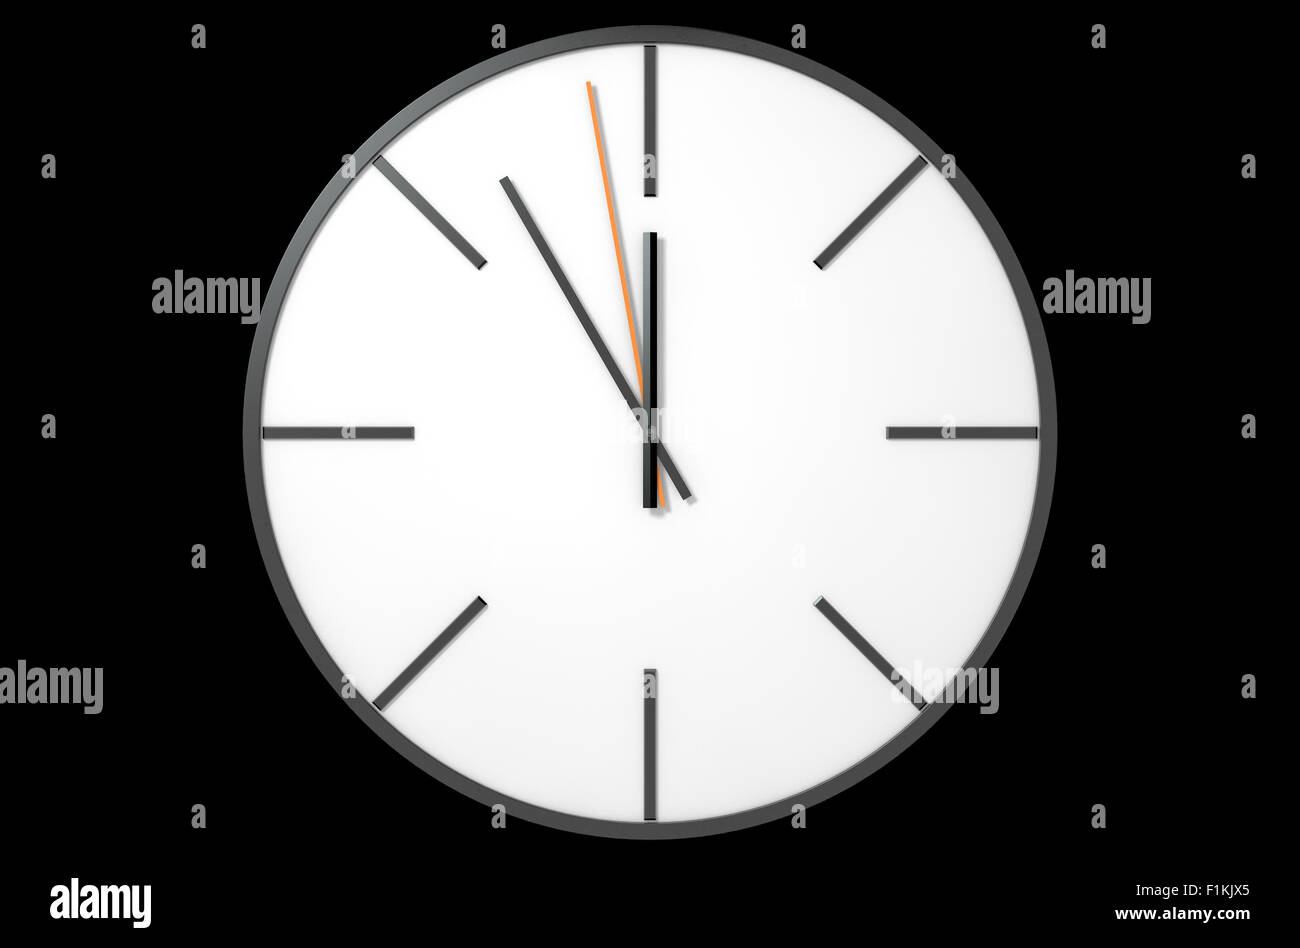 An extreme close up of a modern simplistic watch face on an isolated studio background - Stock Image